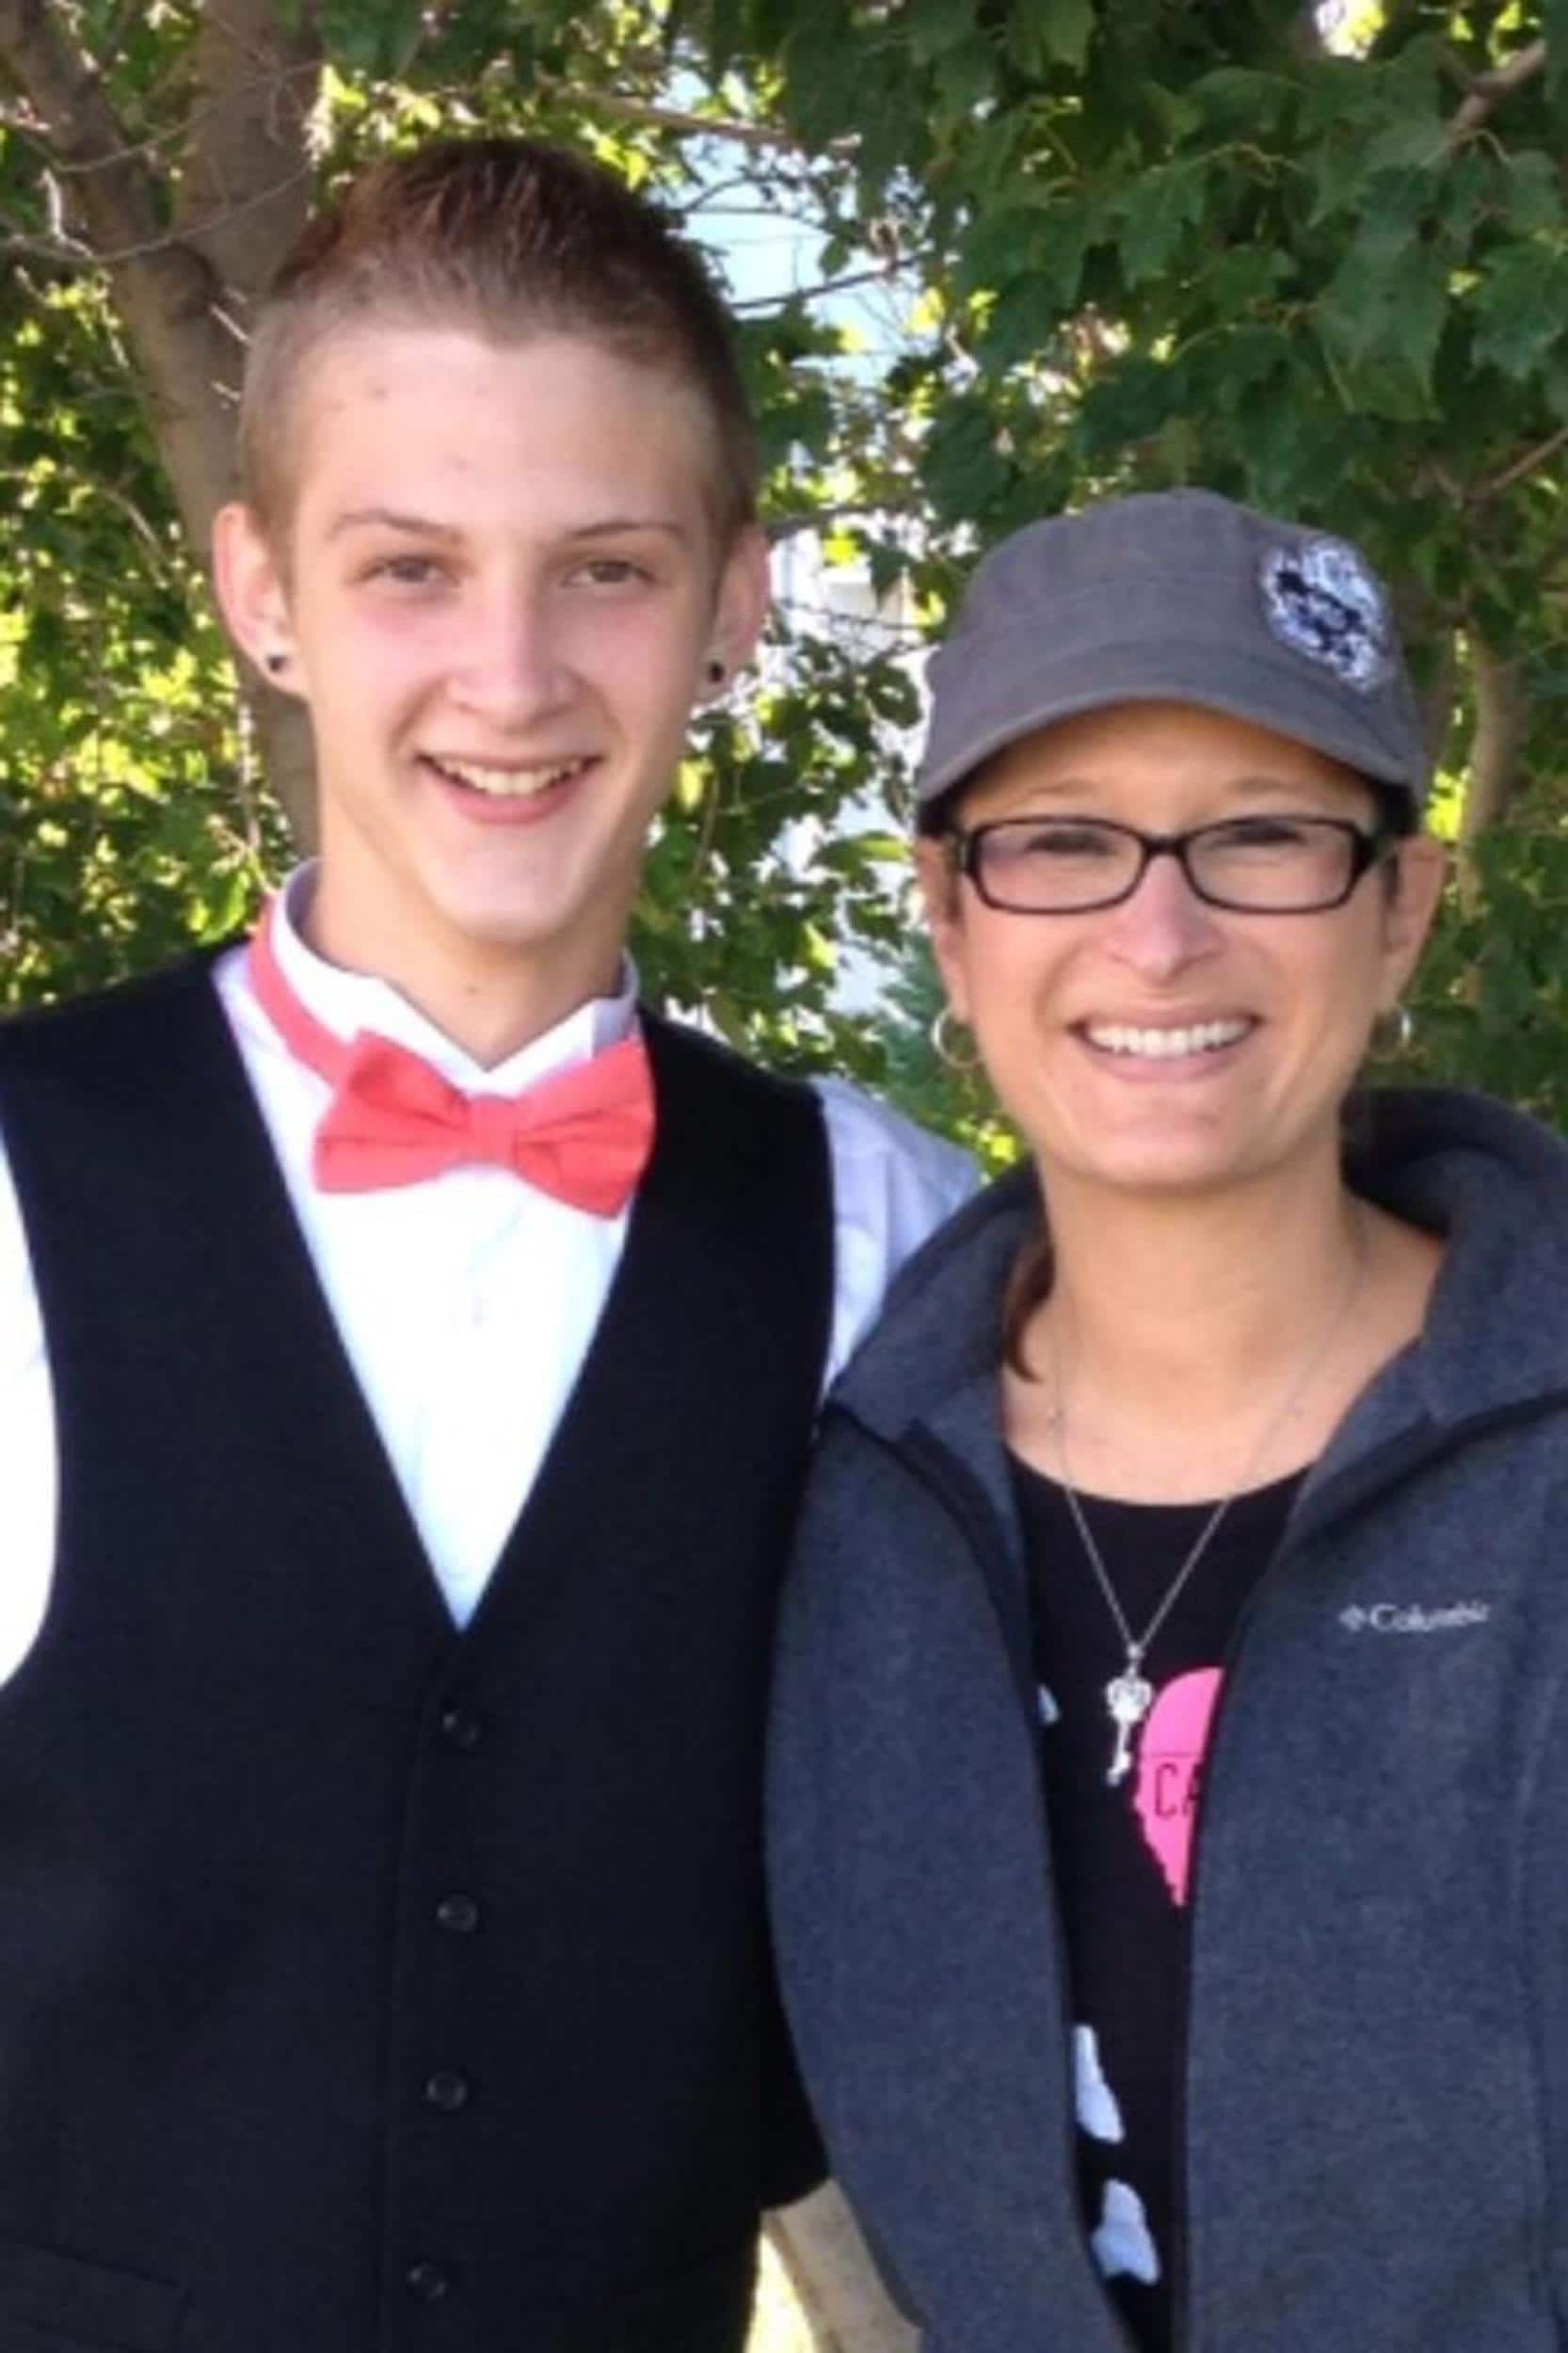 Bryce Masters, 17, and his mother. (Photo: Facebook)